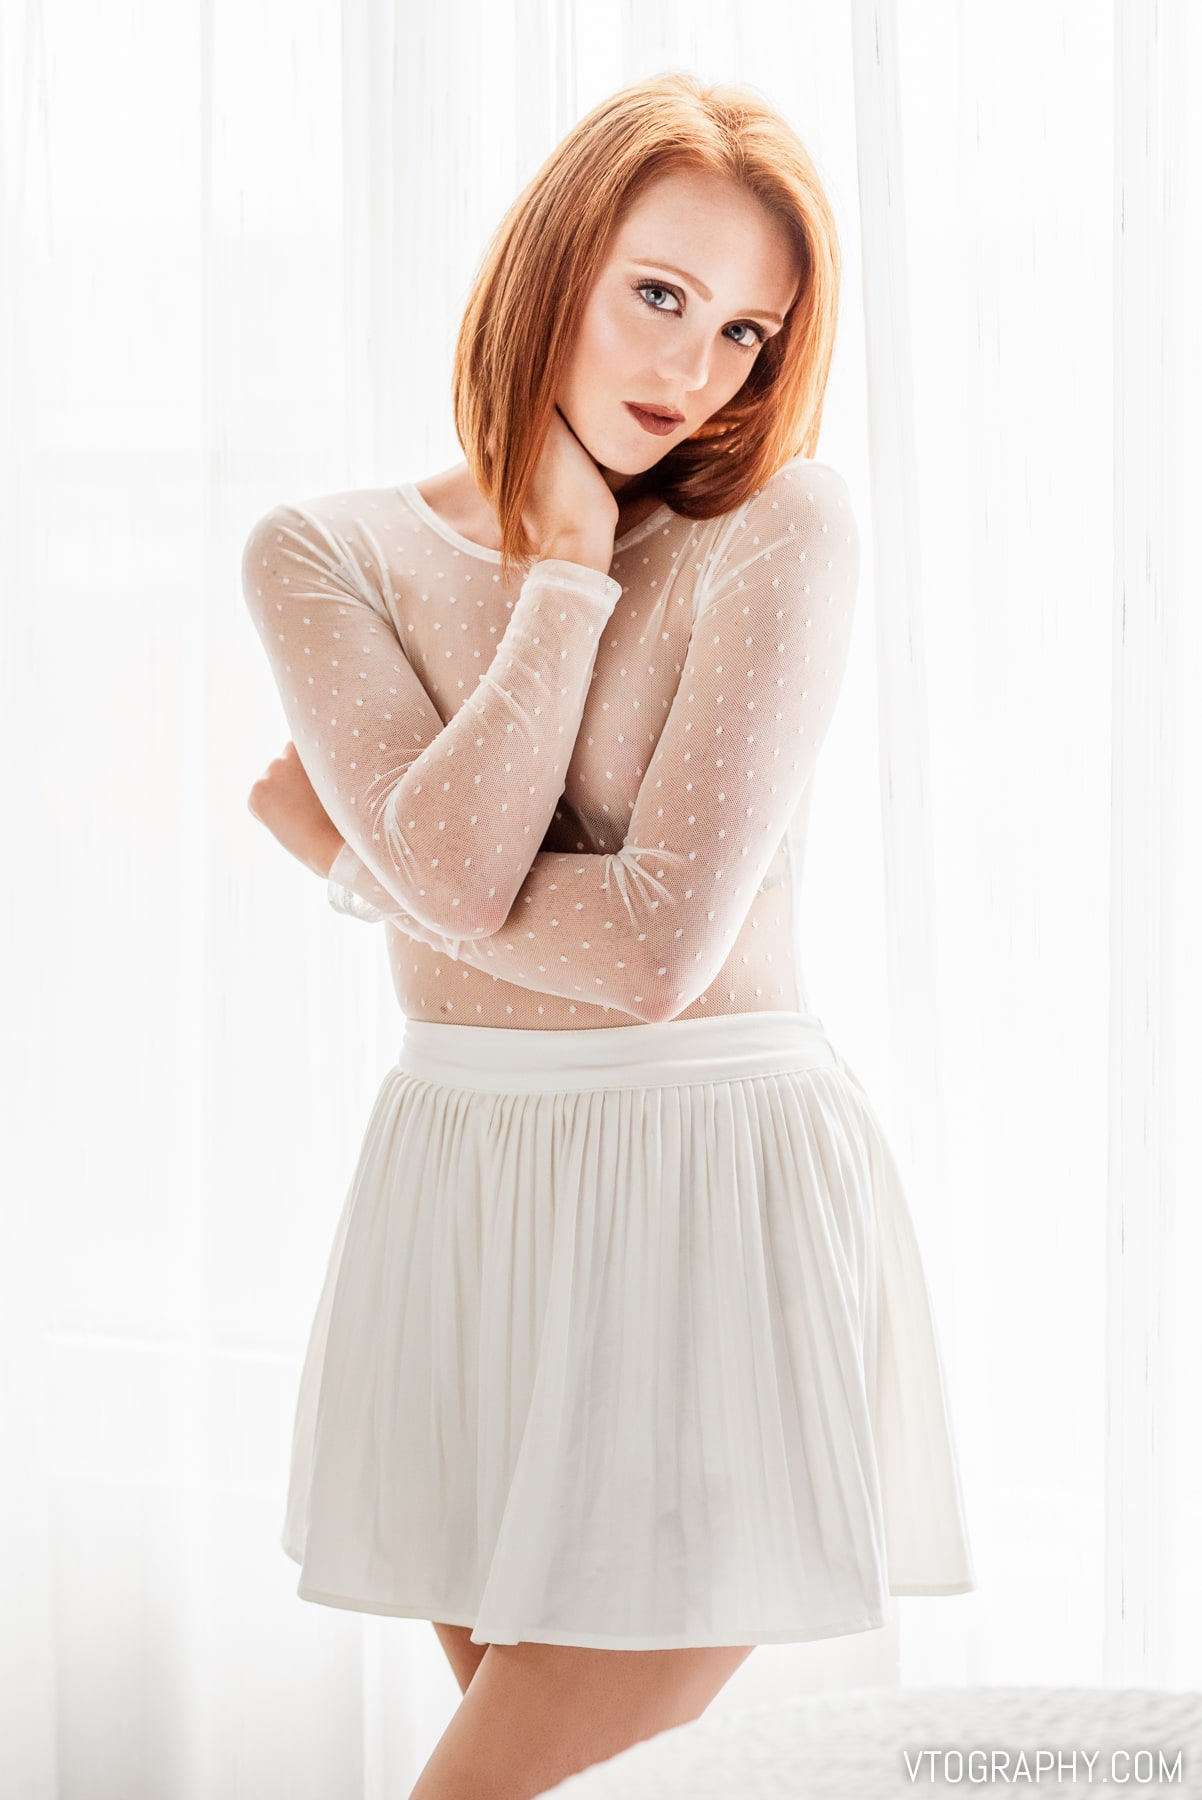 Redhead model Ashley in sheer top and white skirt